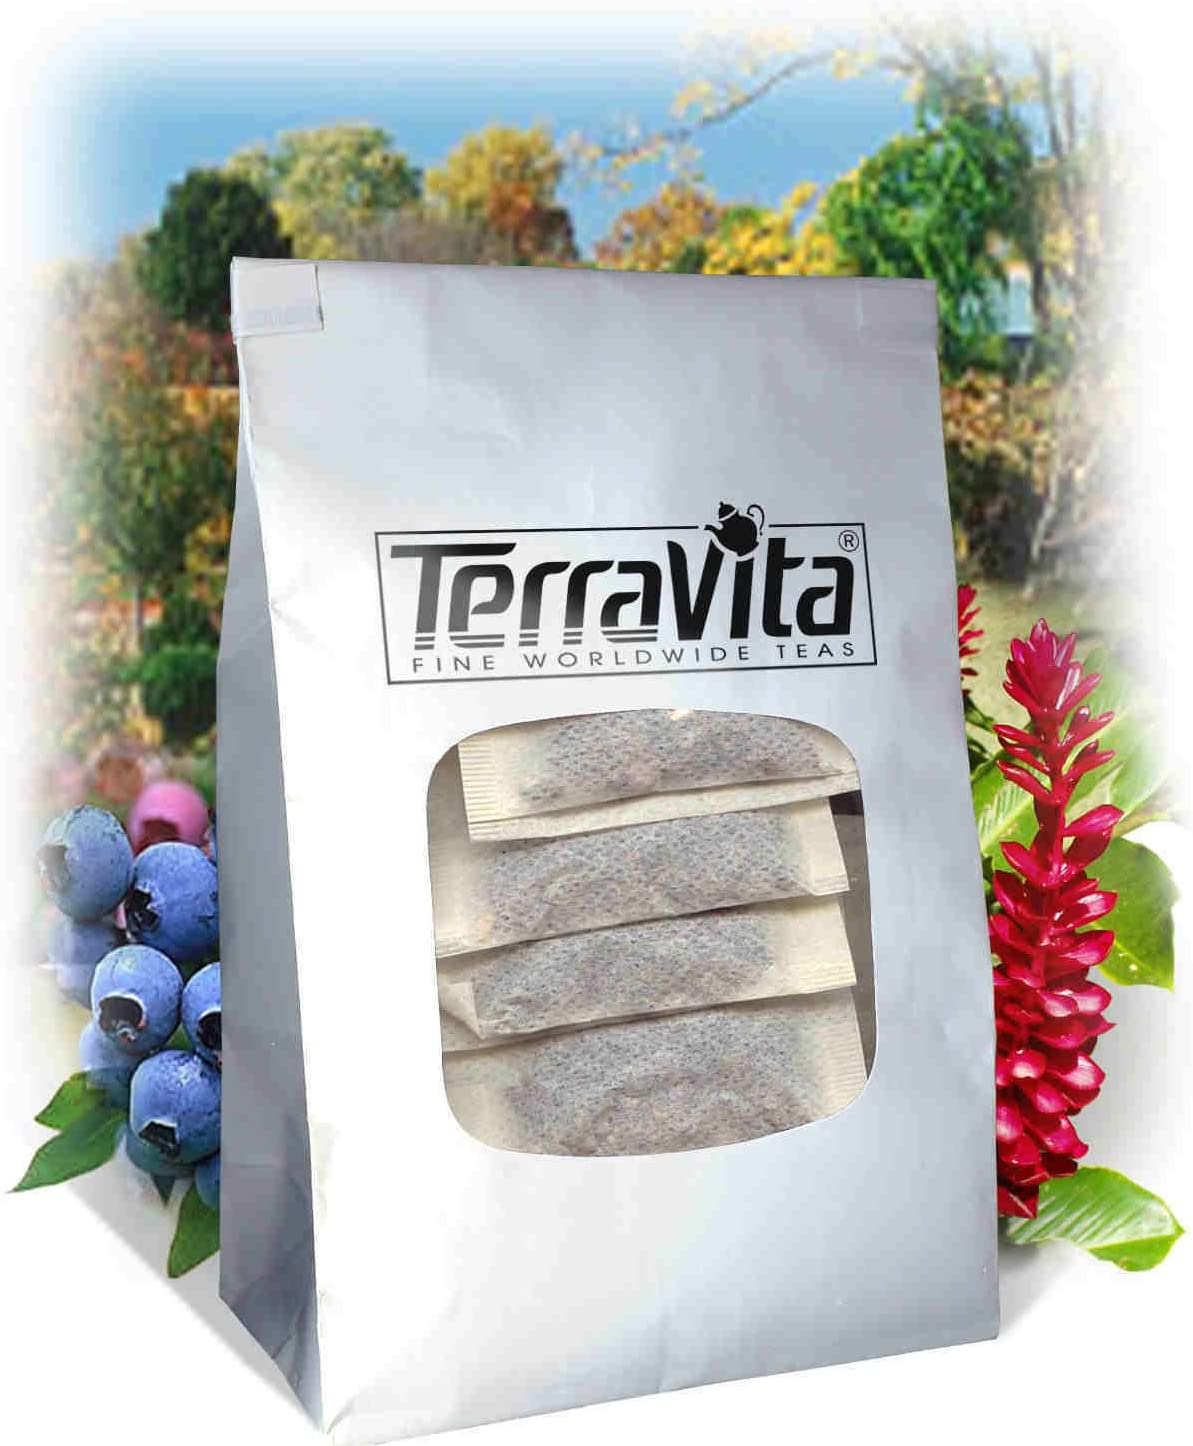 combat menopause on the go, silver bag with window on front showing Terra Vita black cohosh tea bags